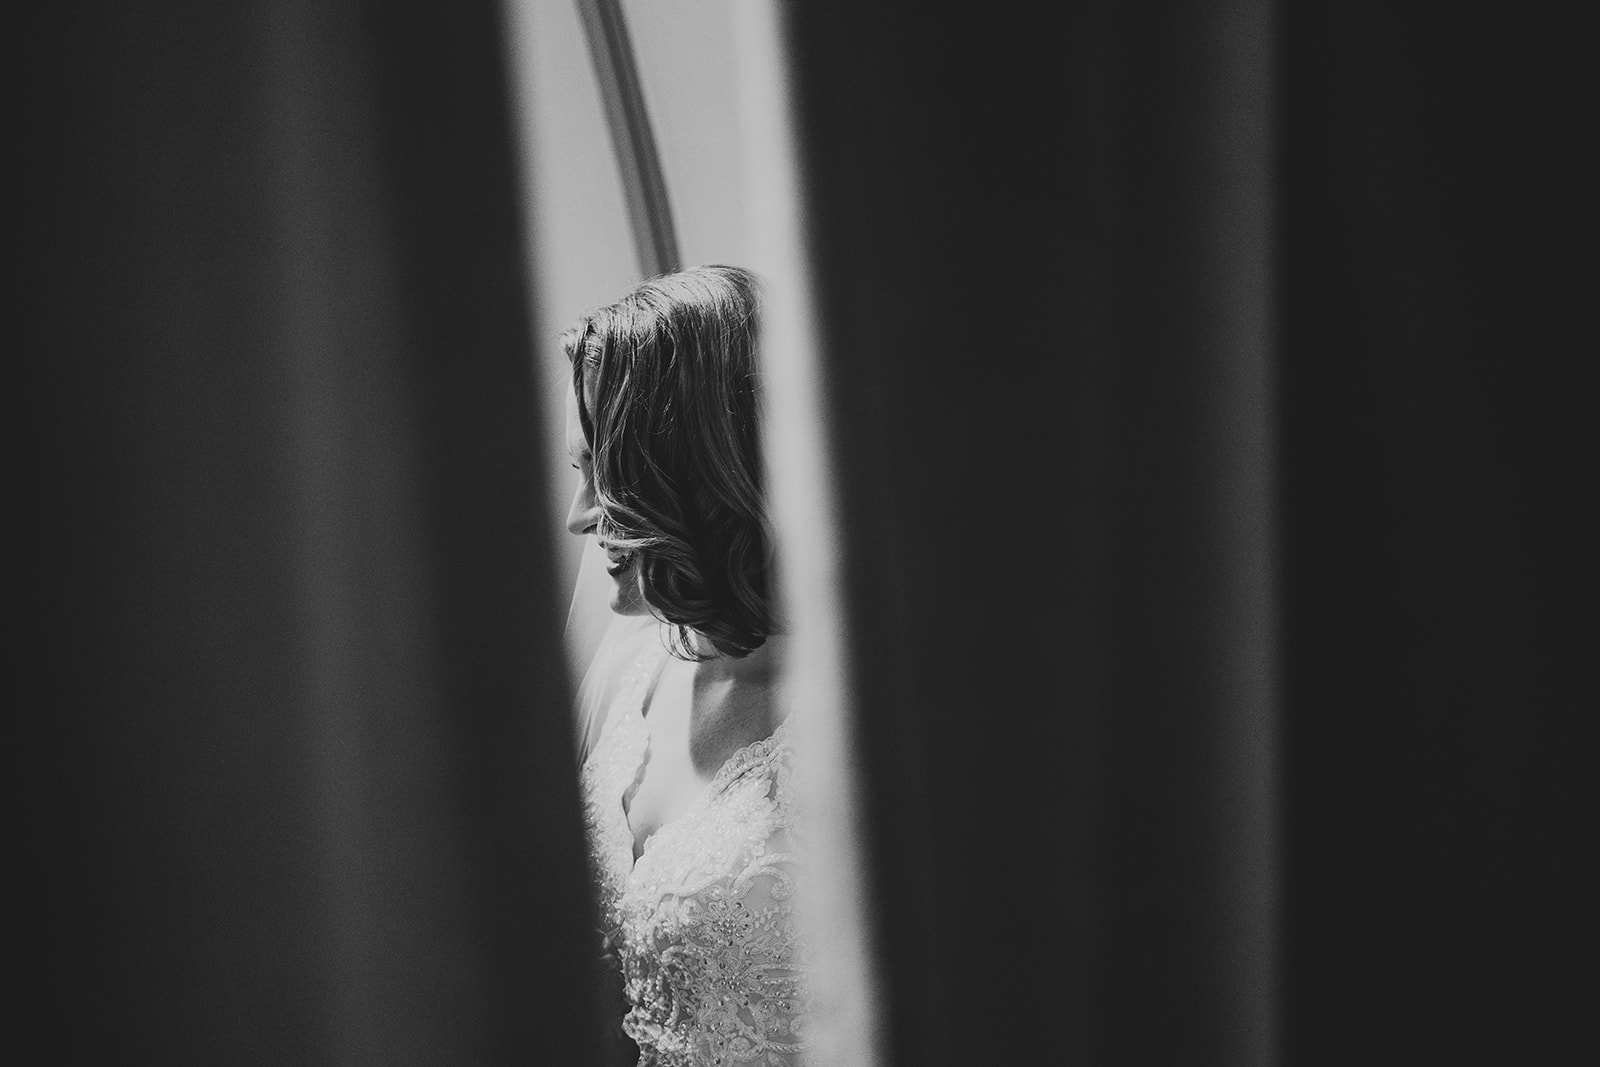 10-20-18-Katy-Kevin-Wedding-Embassy_Suites-Alexandria-VA-1181_websize.jpg